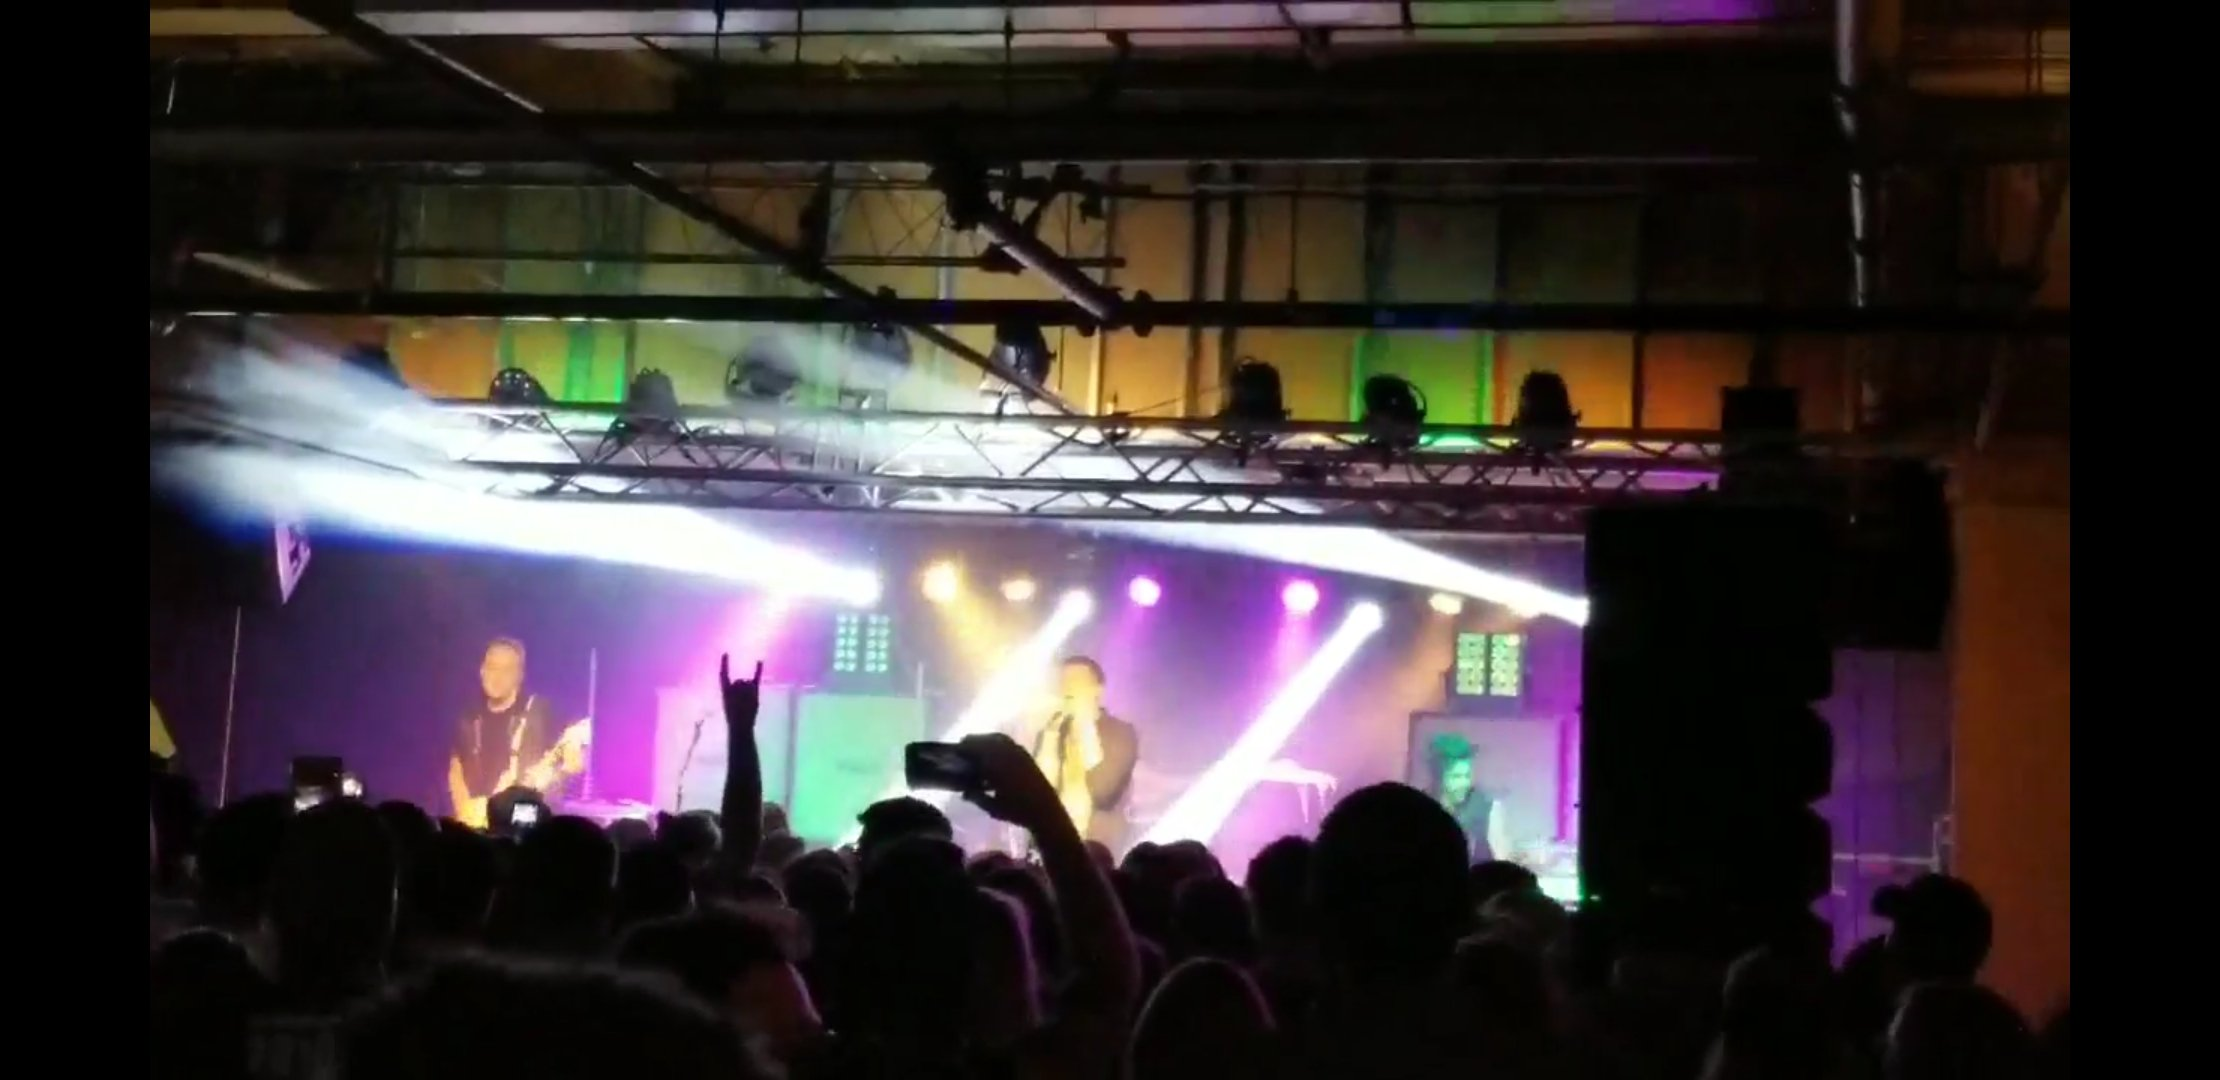 The band Awake At Last preforming in May 2018. The ongoing renovations to the building aim to bring in more music into the areas as well as spread awareness of other fine arts that are missing around the area today. Photo Cred: Author of this page